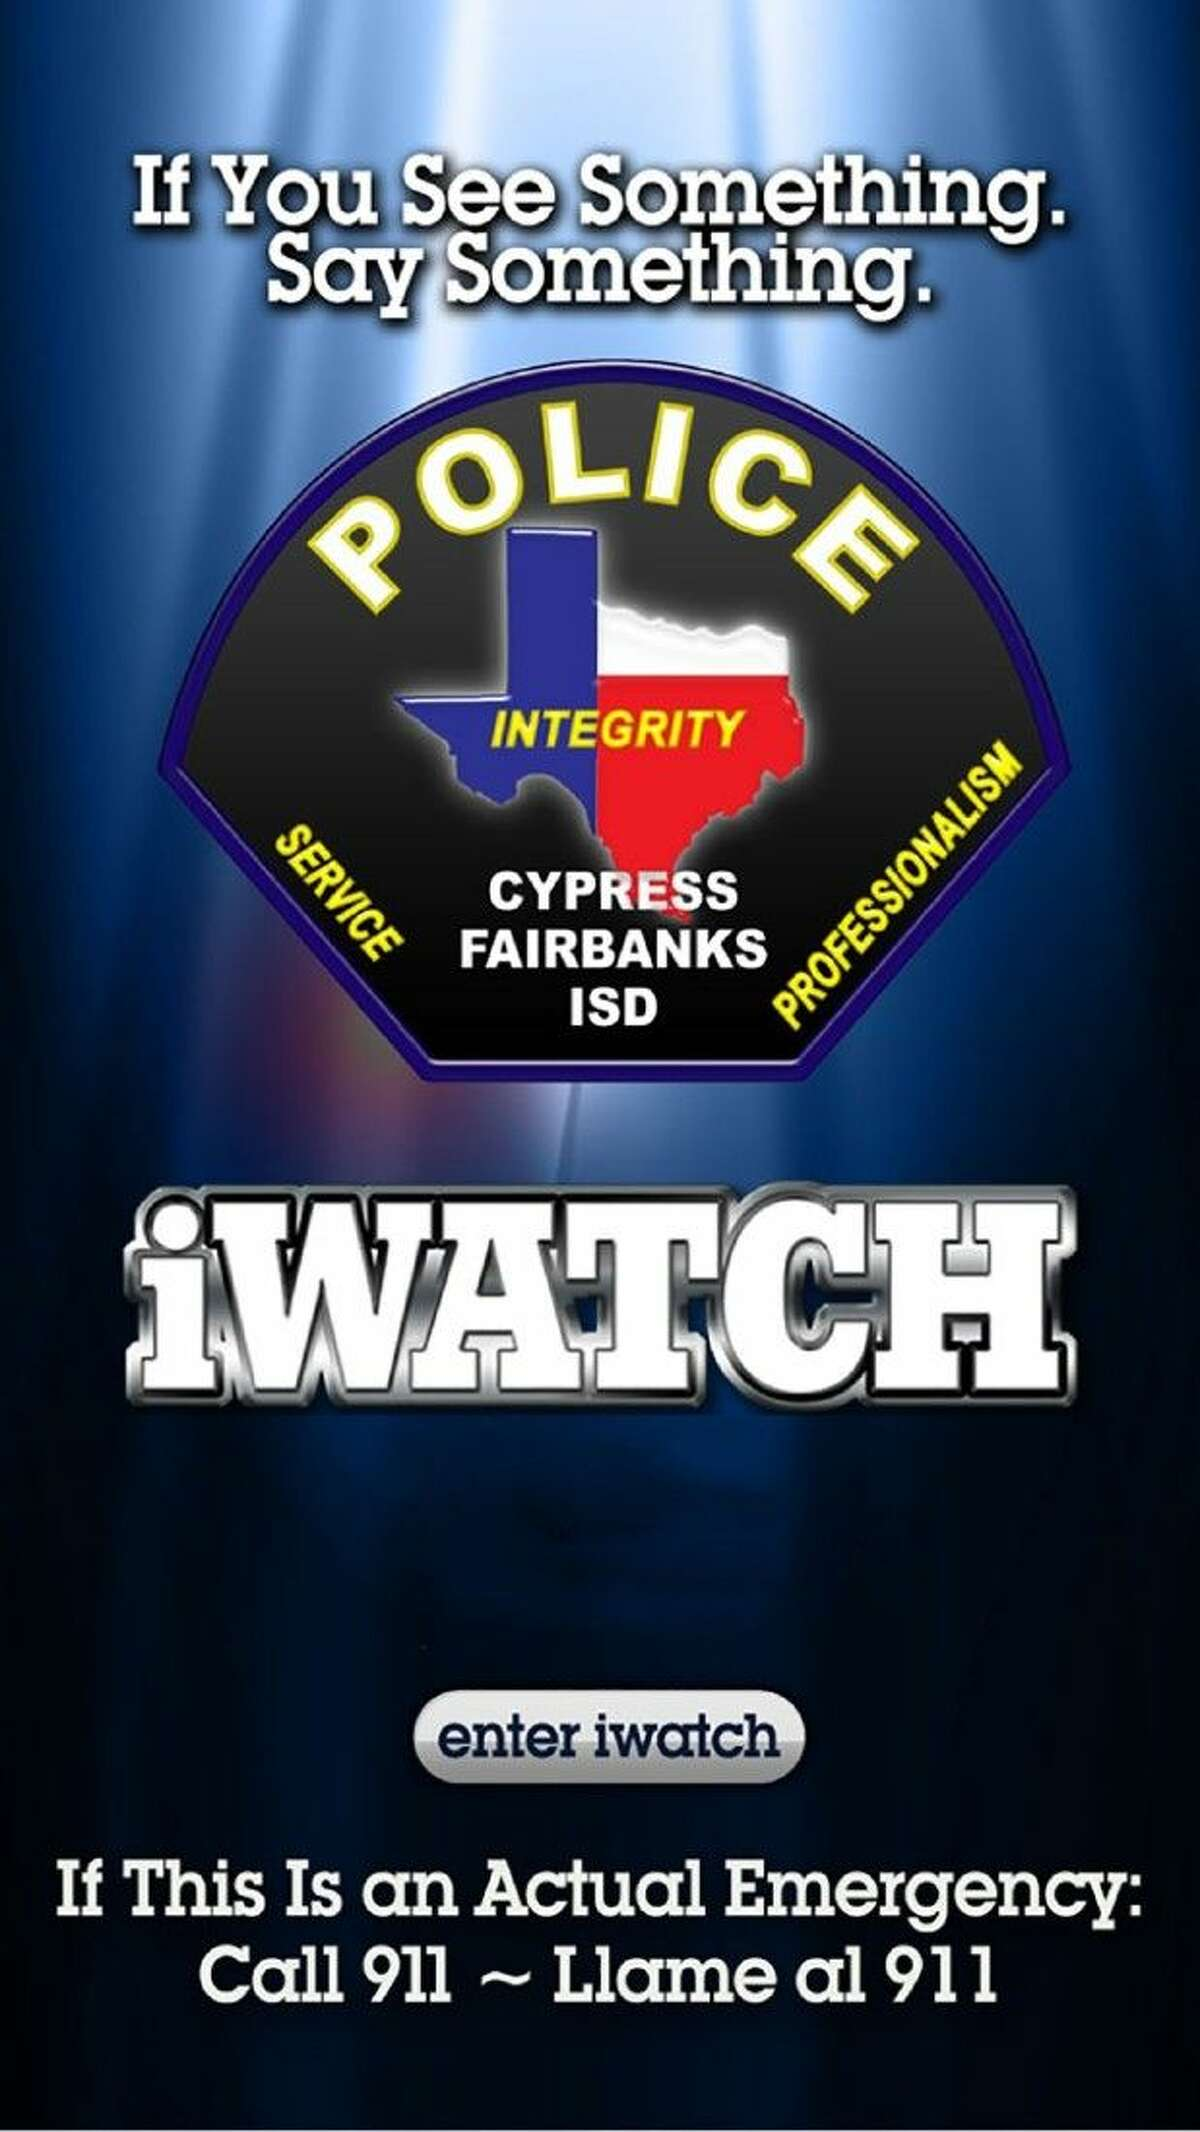 The iWatch Harris County app will enable users to submit district-related tips directly to the CFISD Police Department.